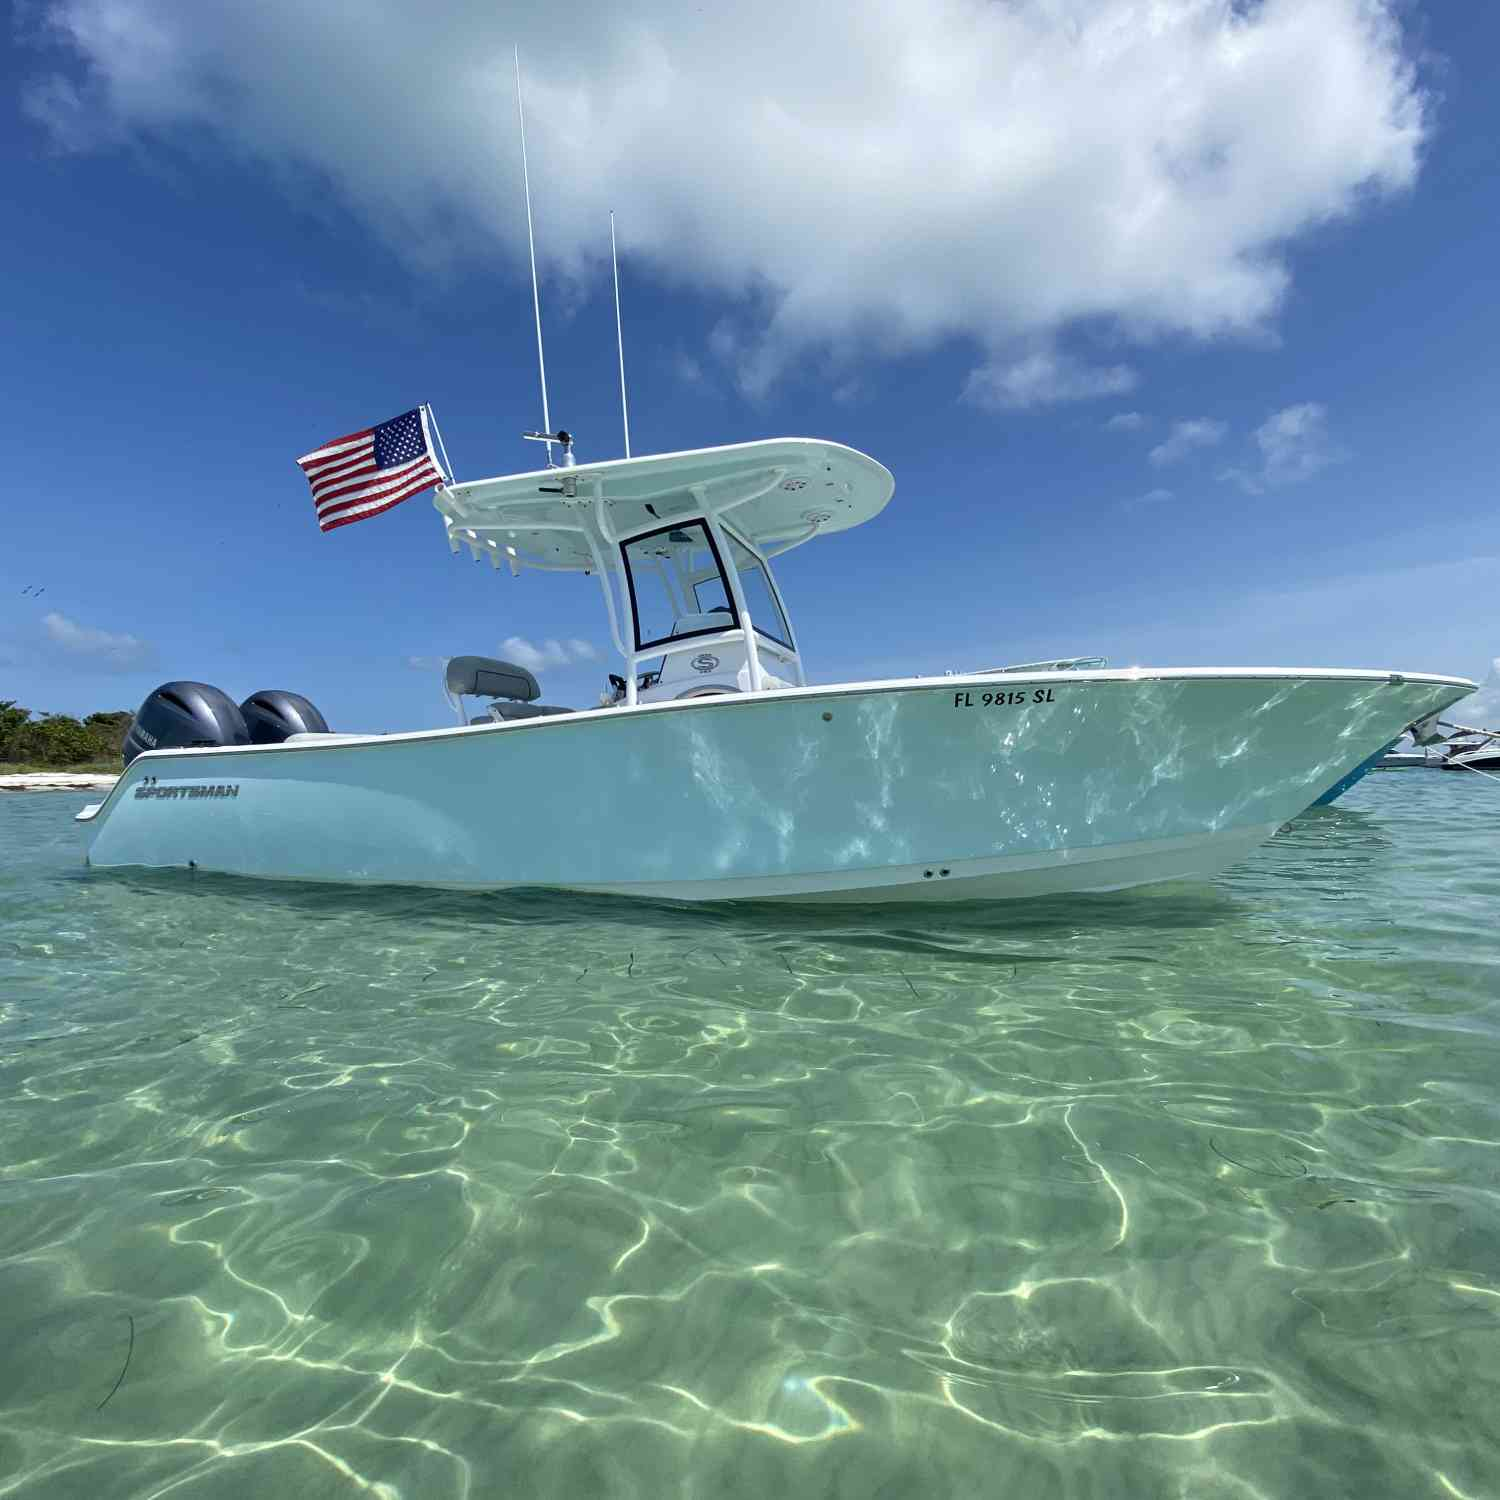 Title: Clear Water! - On board their Sportsman Open 252 Center Console - Location: Egmont Key, Florida. Participating in the Photo Contest #SportsmanMarch2021